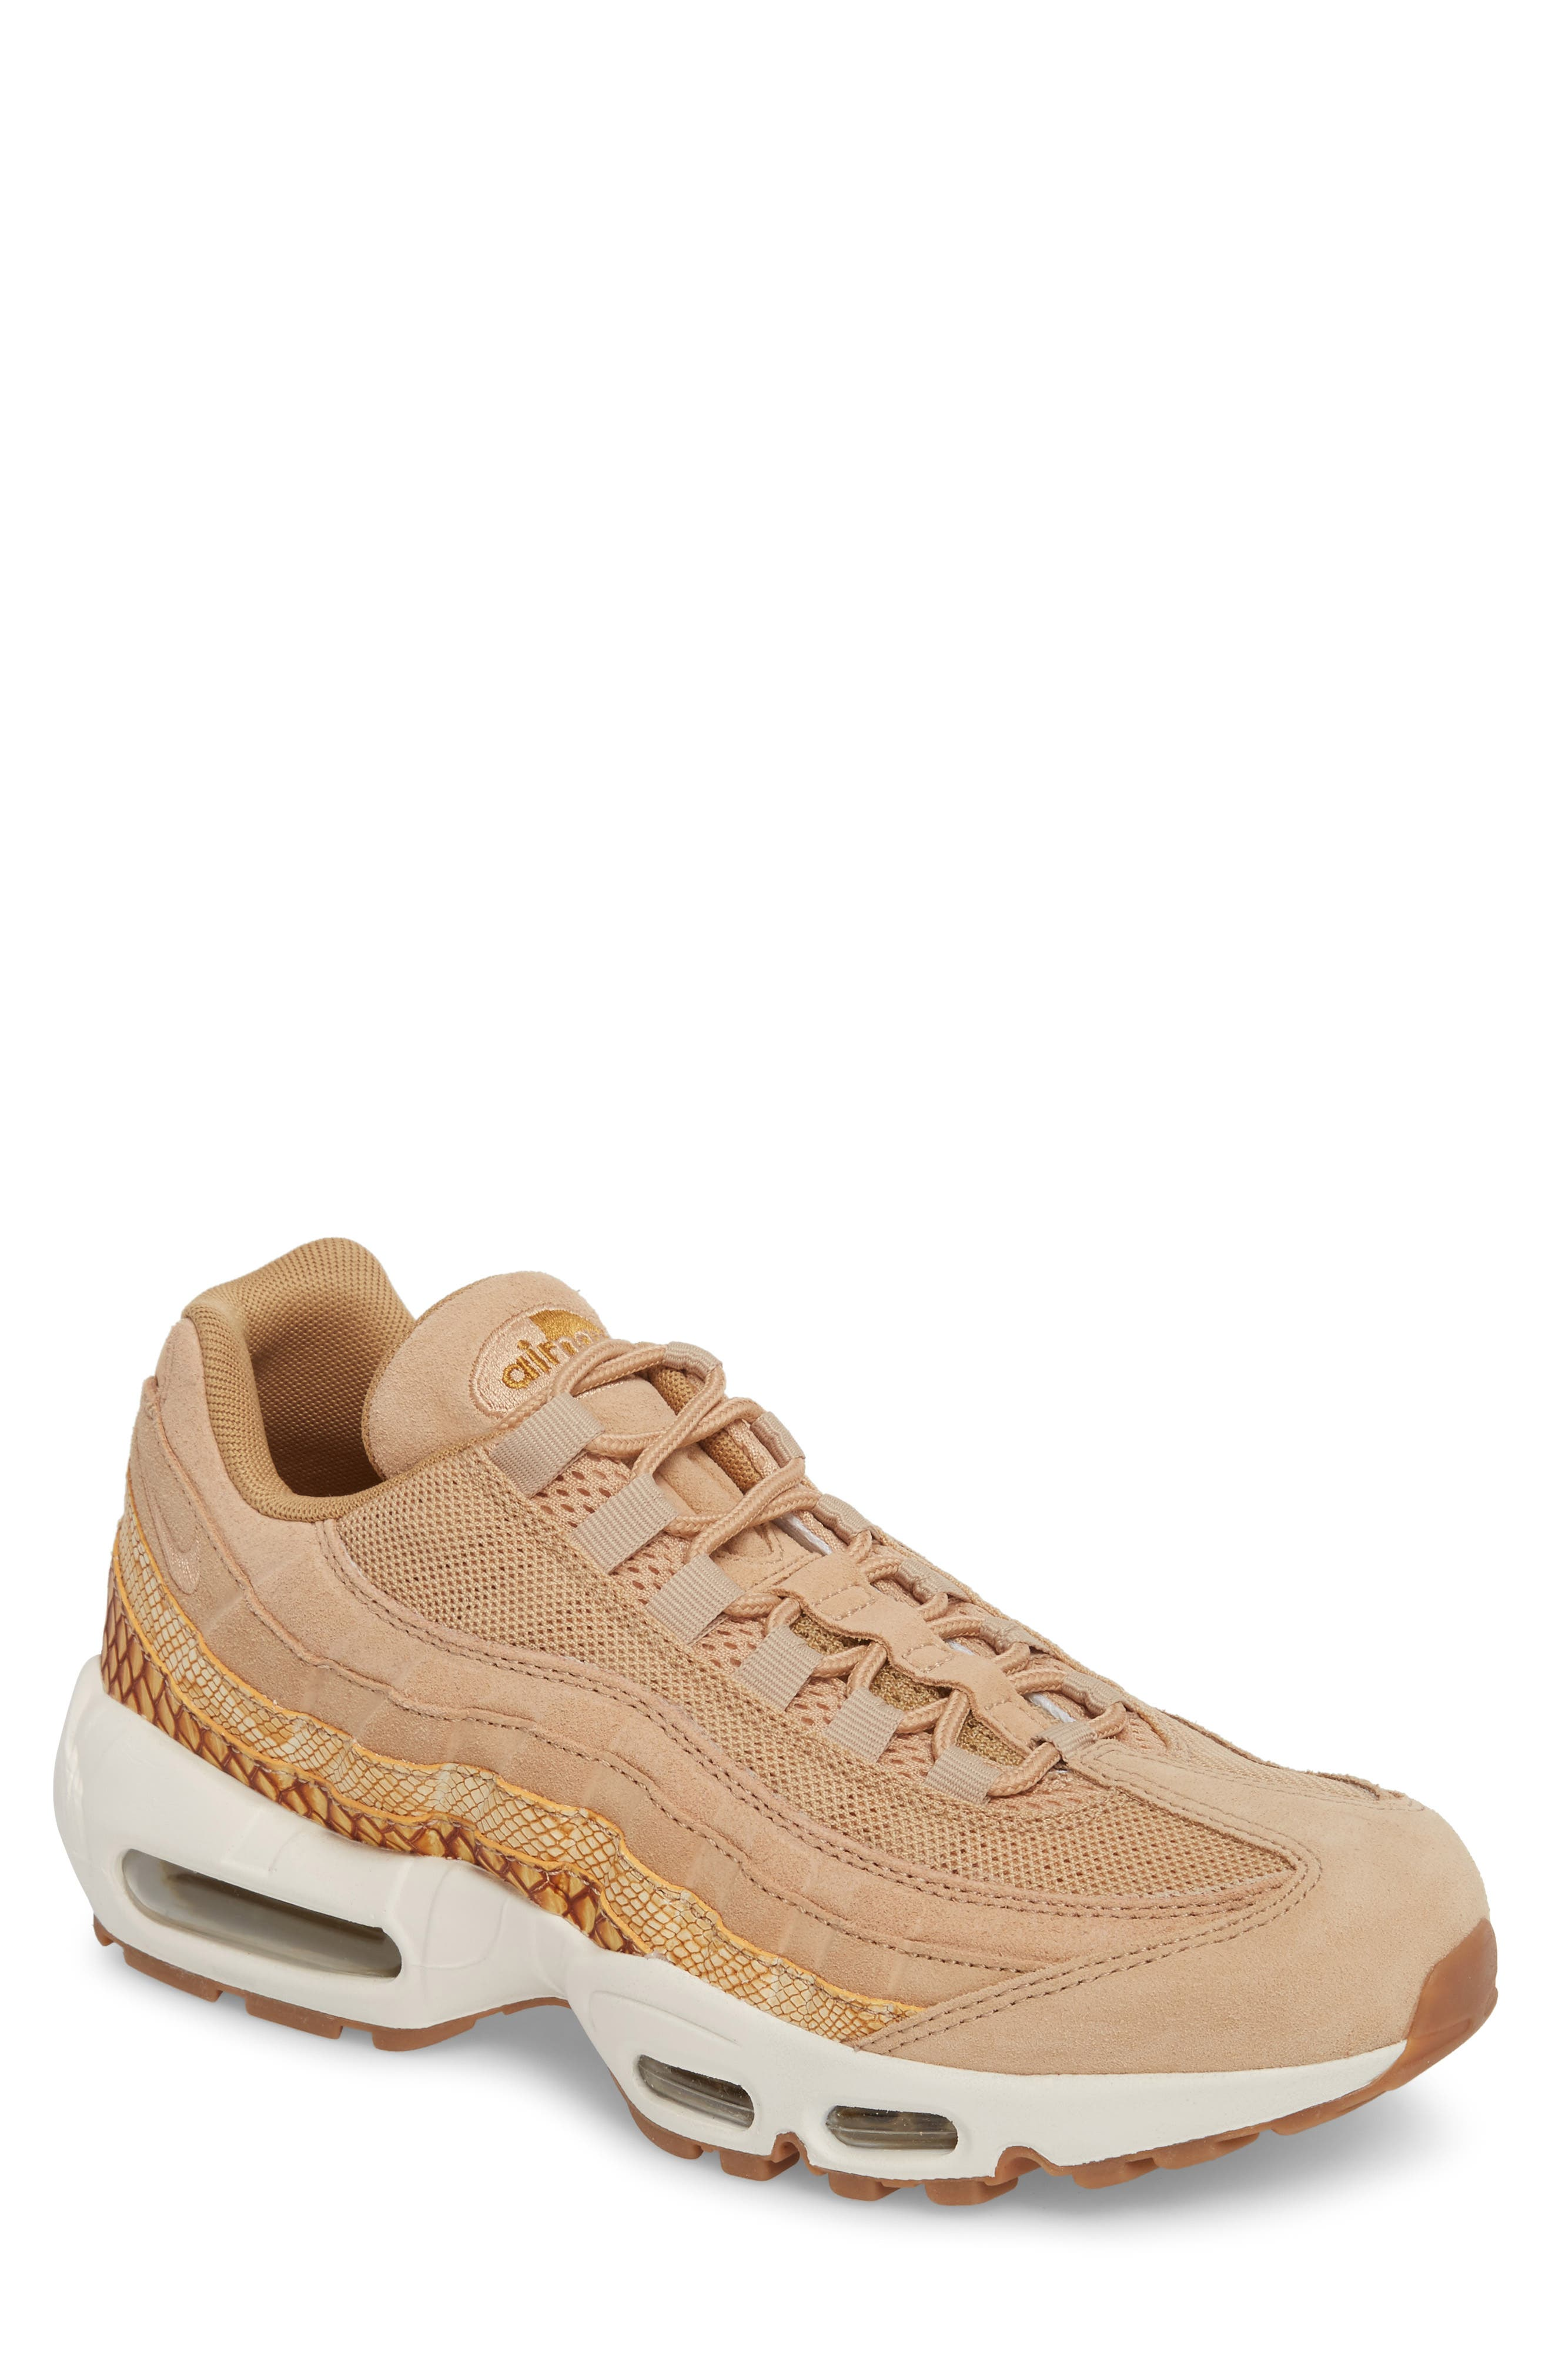 Nike Air Max 95 Premium SE Sneaker (Men)